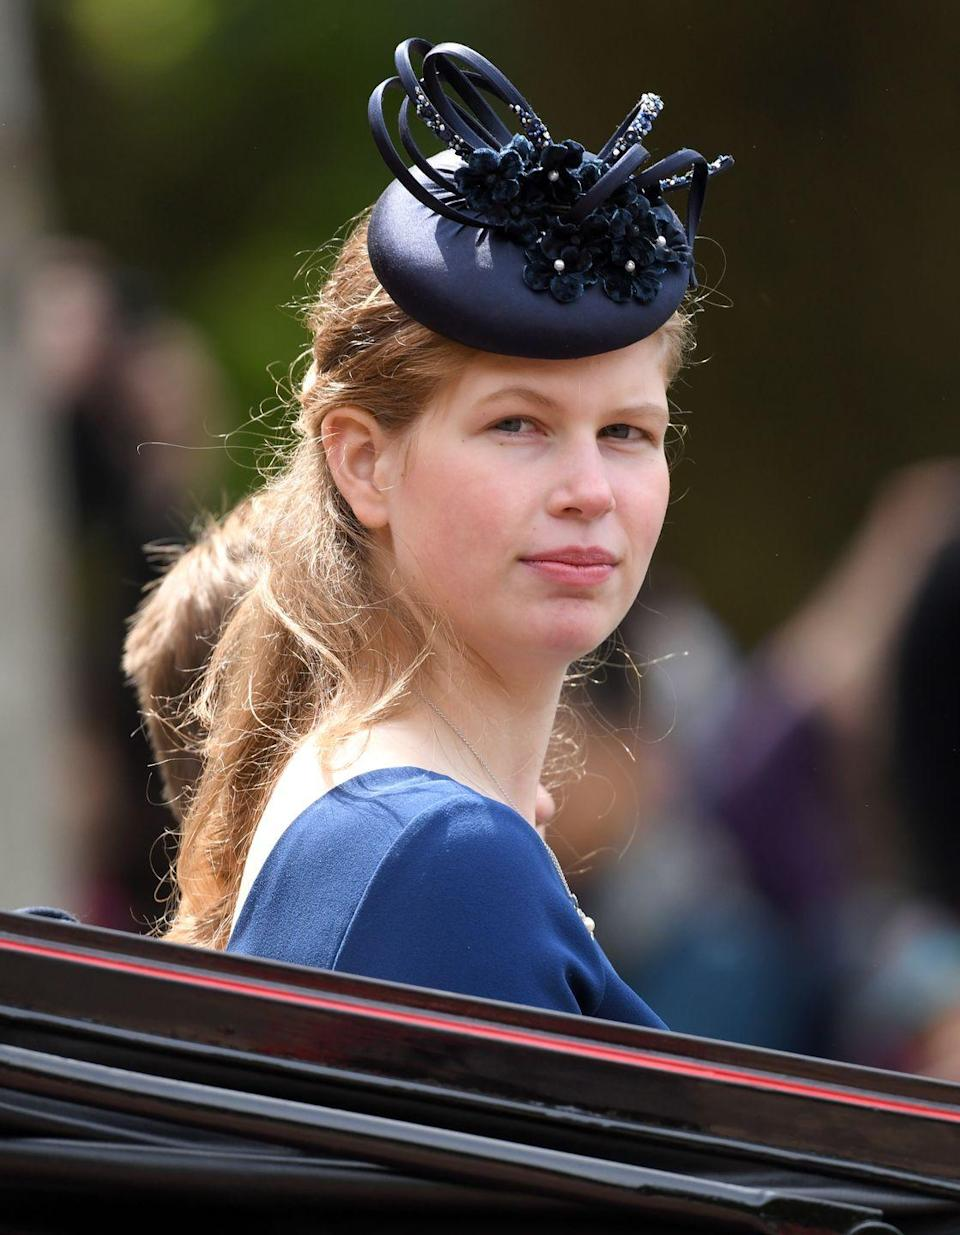 """<p><strong>Branch of the Family Tree: </strong>Daughter and oldest child of Prince Edward; granddaughter of Queen Elizabeth II</p><p><strong>More: </strong><a href=""""https://www.townandcountrymag.com/society/tradition/a14501238/lady-louise-windsor-facts/"""" rel=""""nofollow noopener"""" target=""""_blank"""" data-ylk=""""slk:Get to Know Lady Louise Here"""" class=""""link rapid-noclick-resp"""">Get to Know Lady Louise Here</a></p>"""